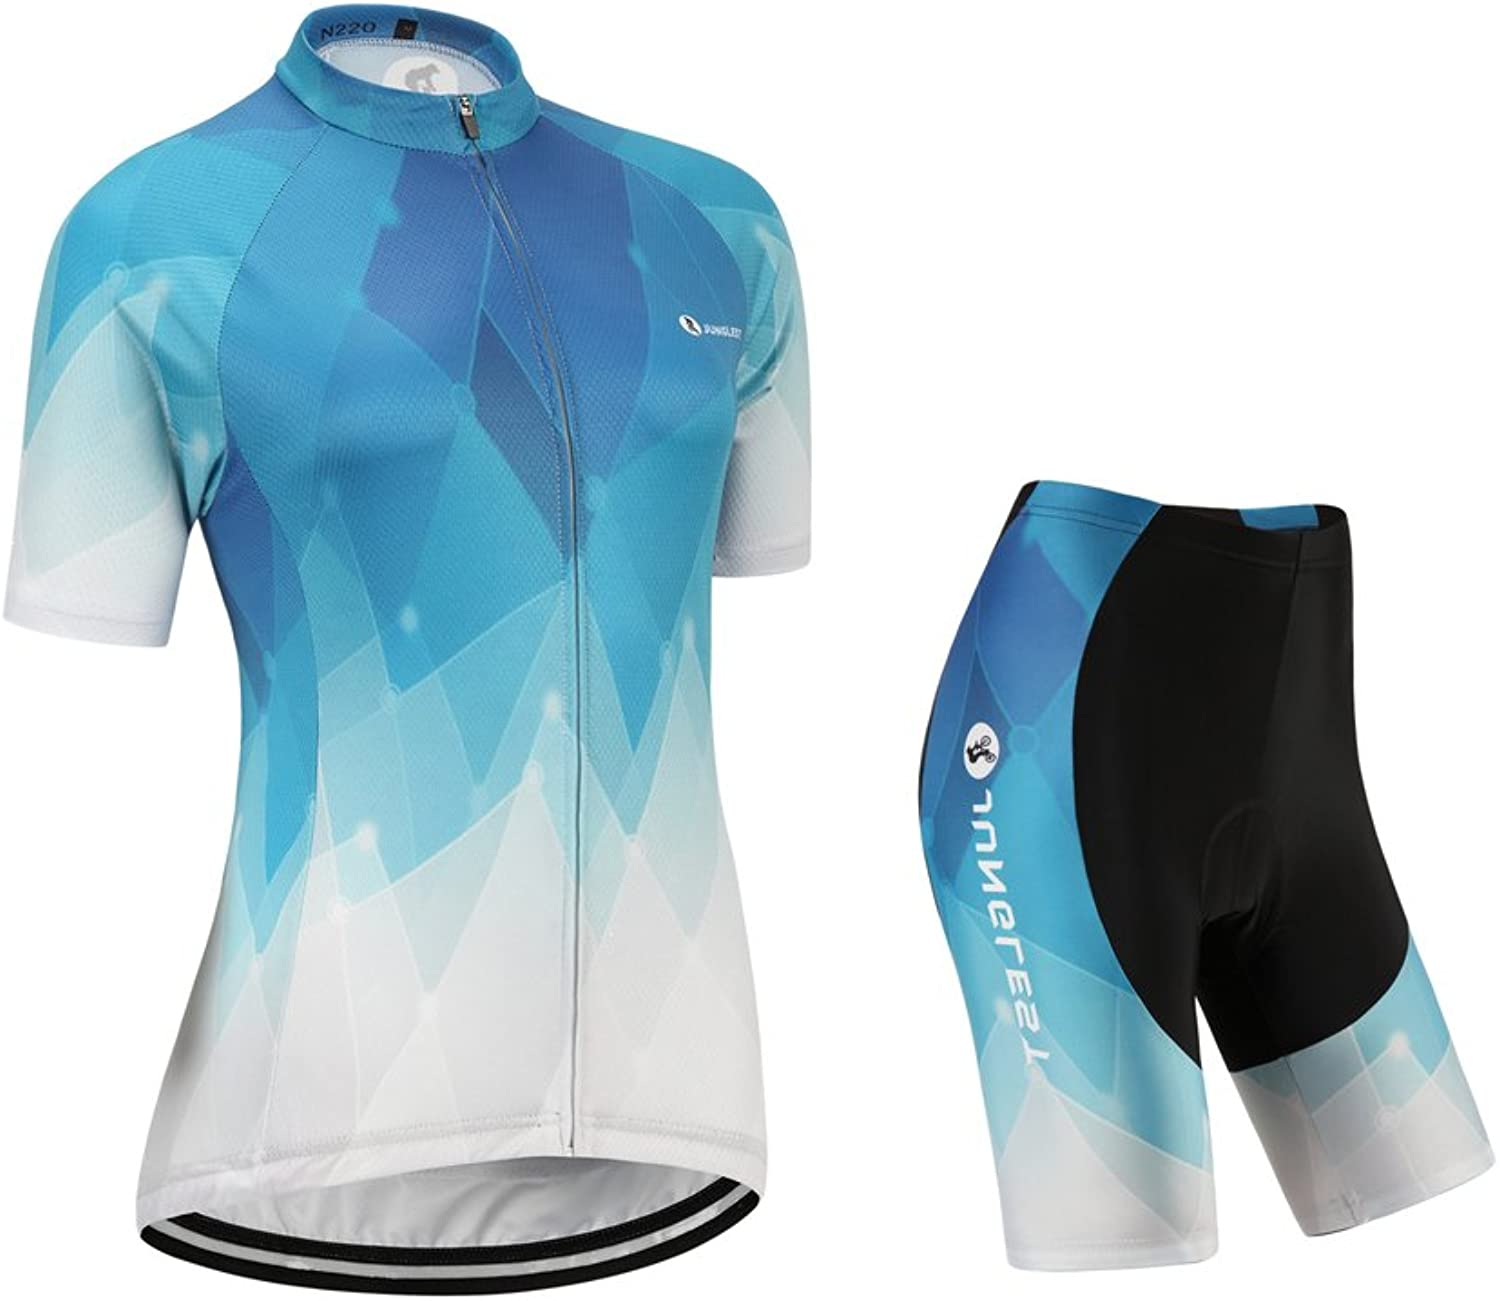 JUNGLEST Women's Cycling Jersey and Shorts Set,Short Sleeve with 3D Pad